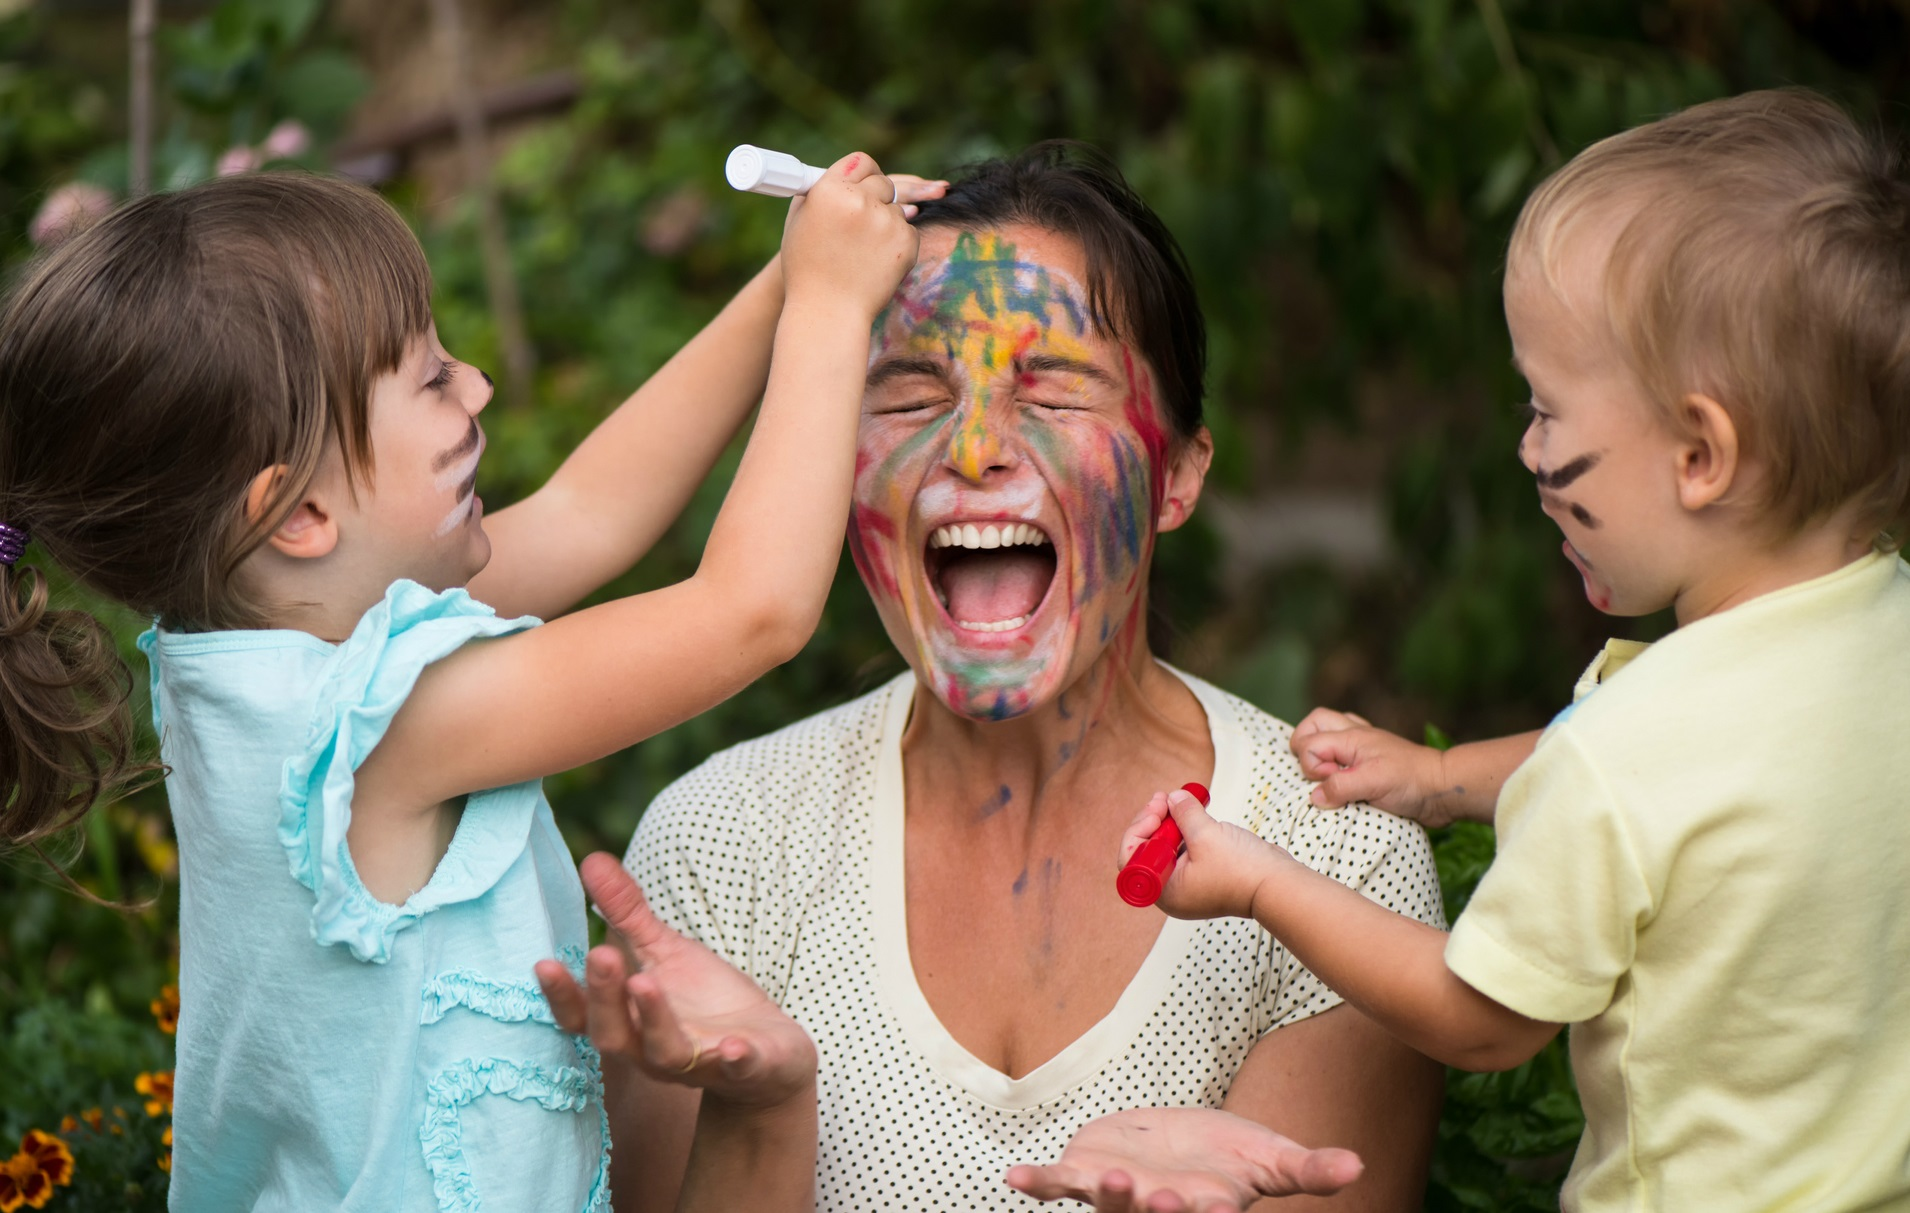 Crafting: The Ideal Family Activity